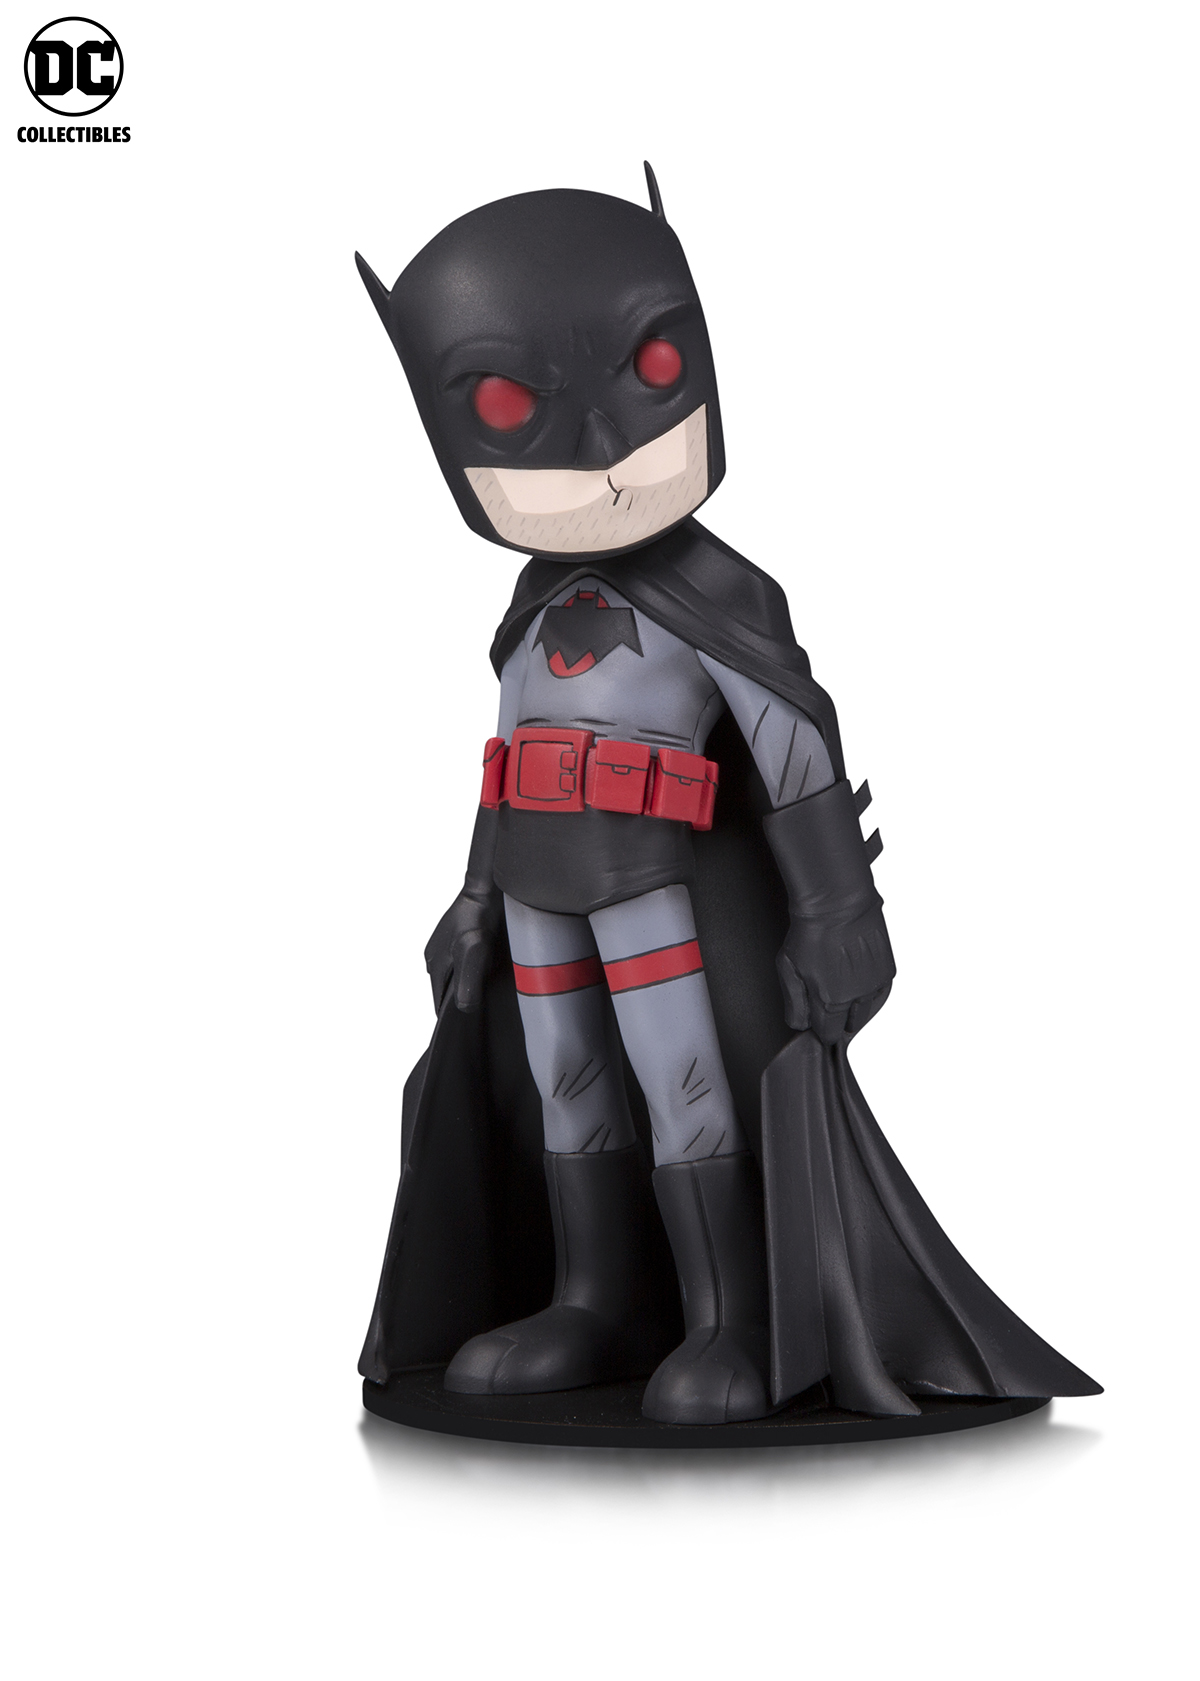 DC Artists Alley San Diego Comic-Con 2018 Exclusives